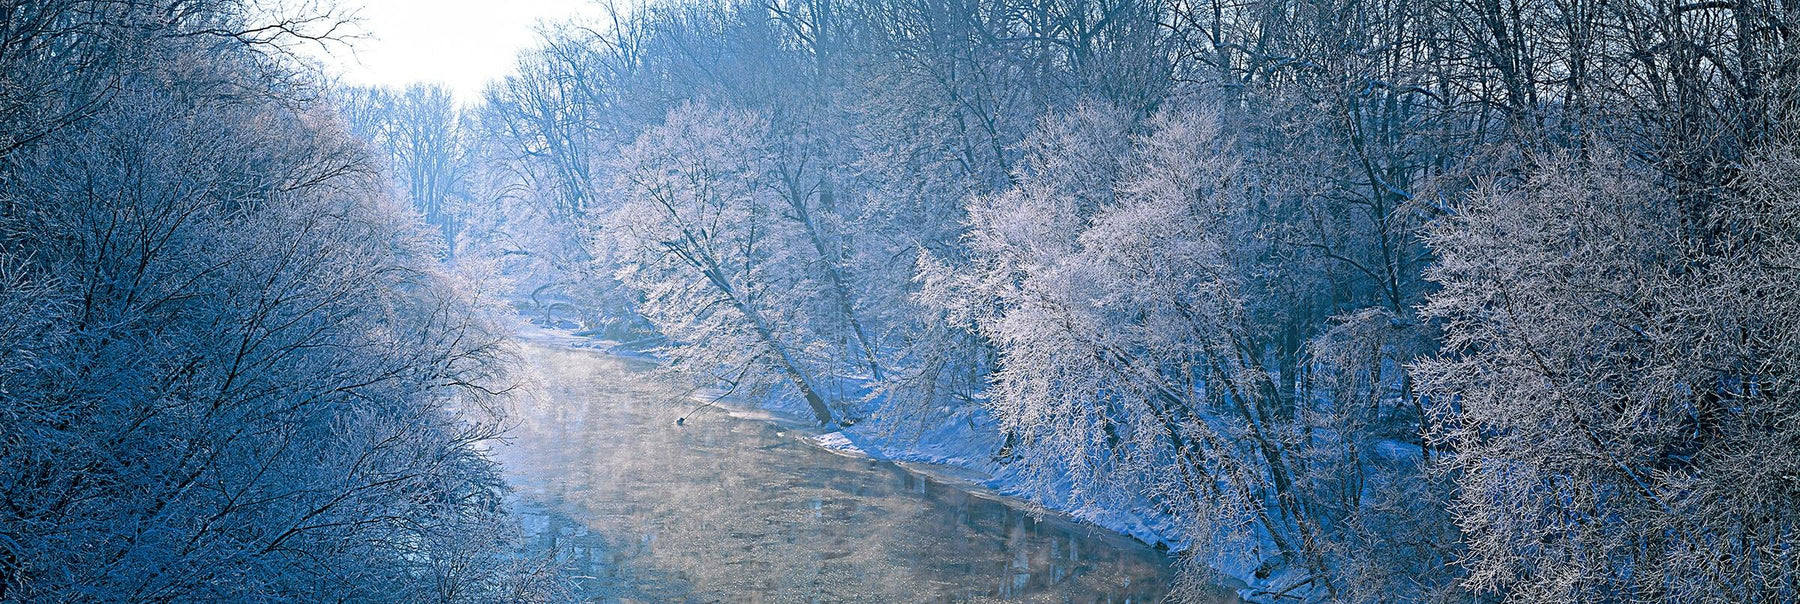 Sun shining through the frozen forest of trees surrounding a river in Wayne National Forest Ohio